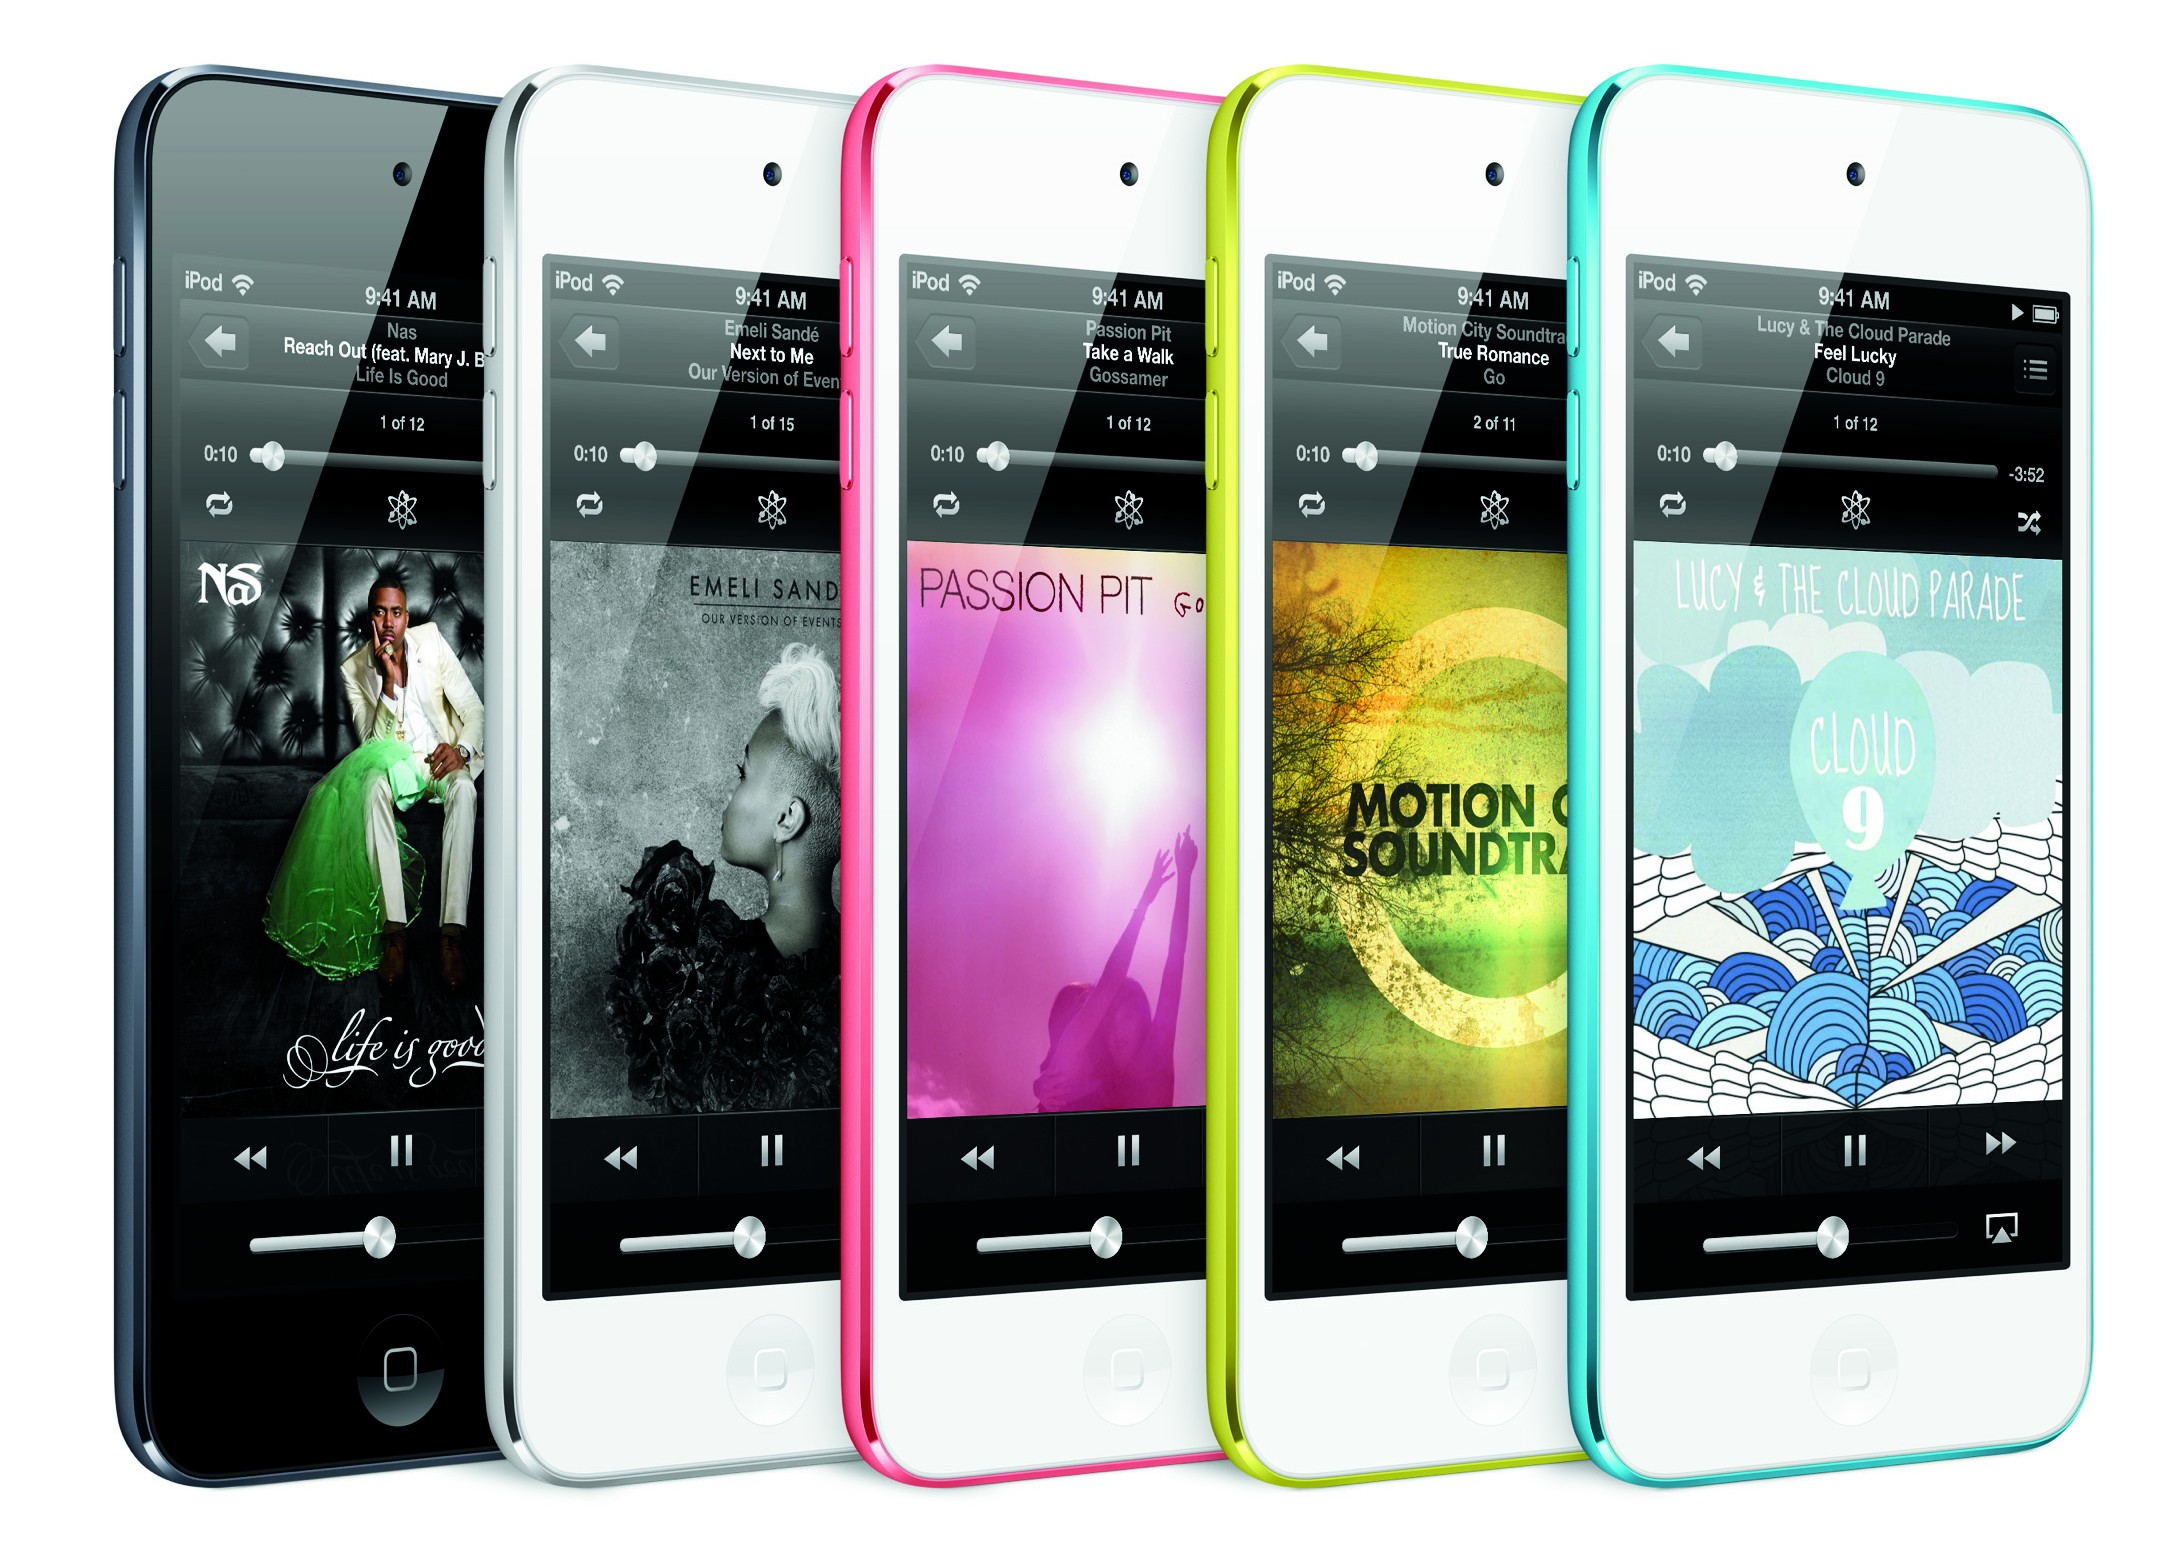 Apple iPod Touch gen 5